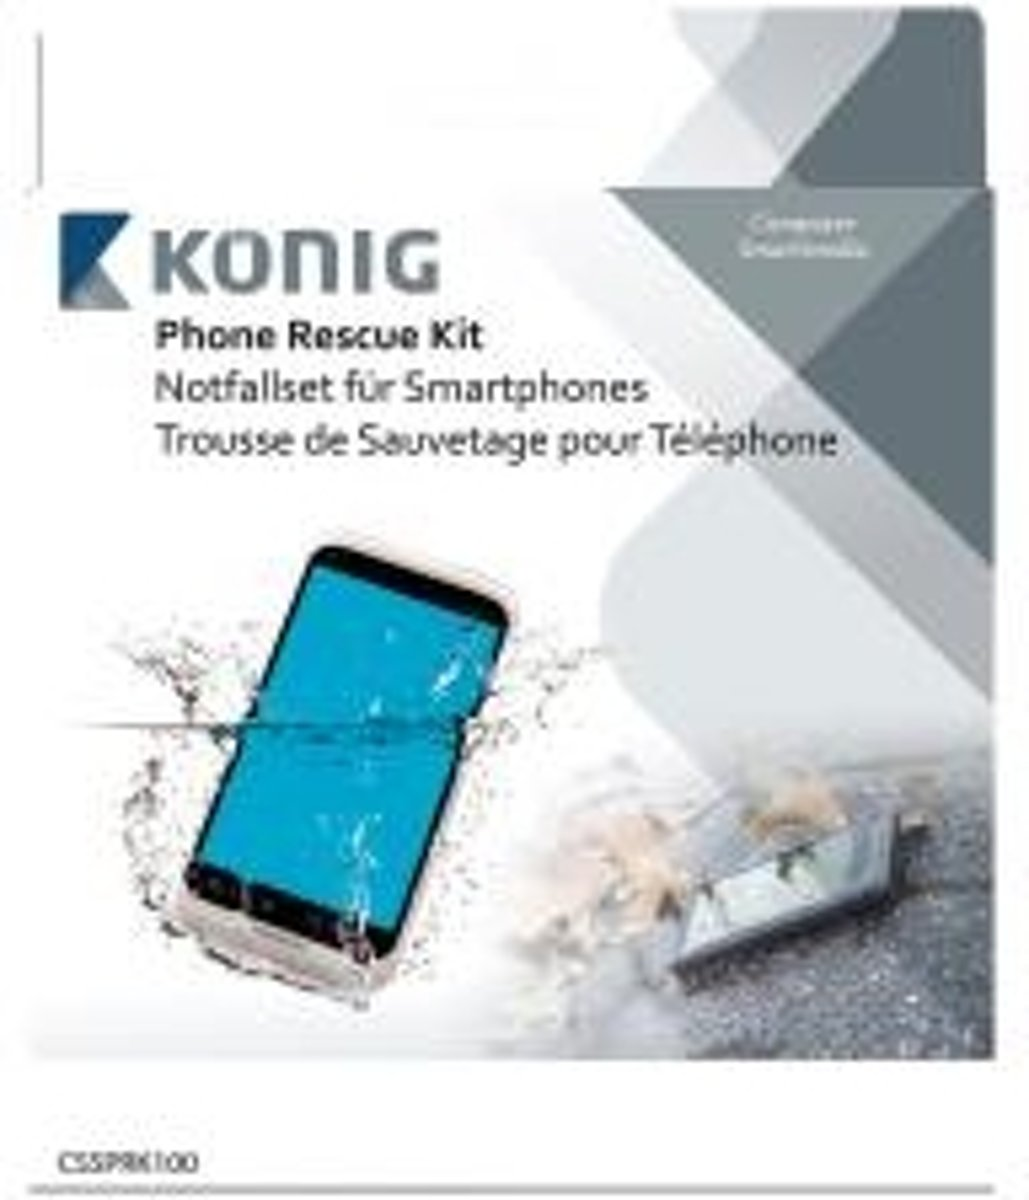 König CSSPRK100 Phone Rescue Kit, Waterschade aan telefoon kit kopen